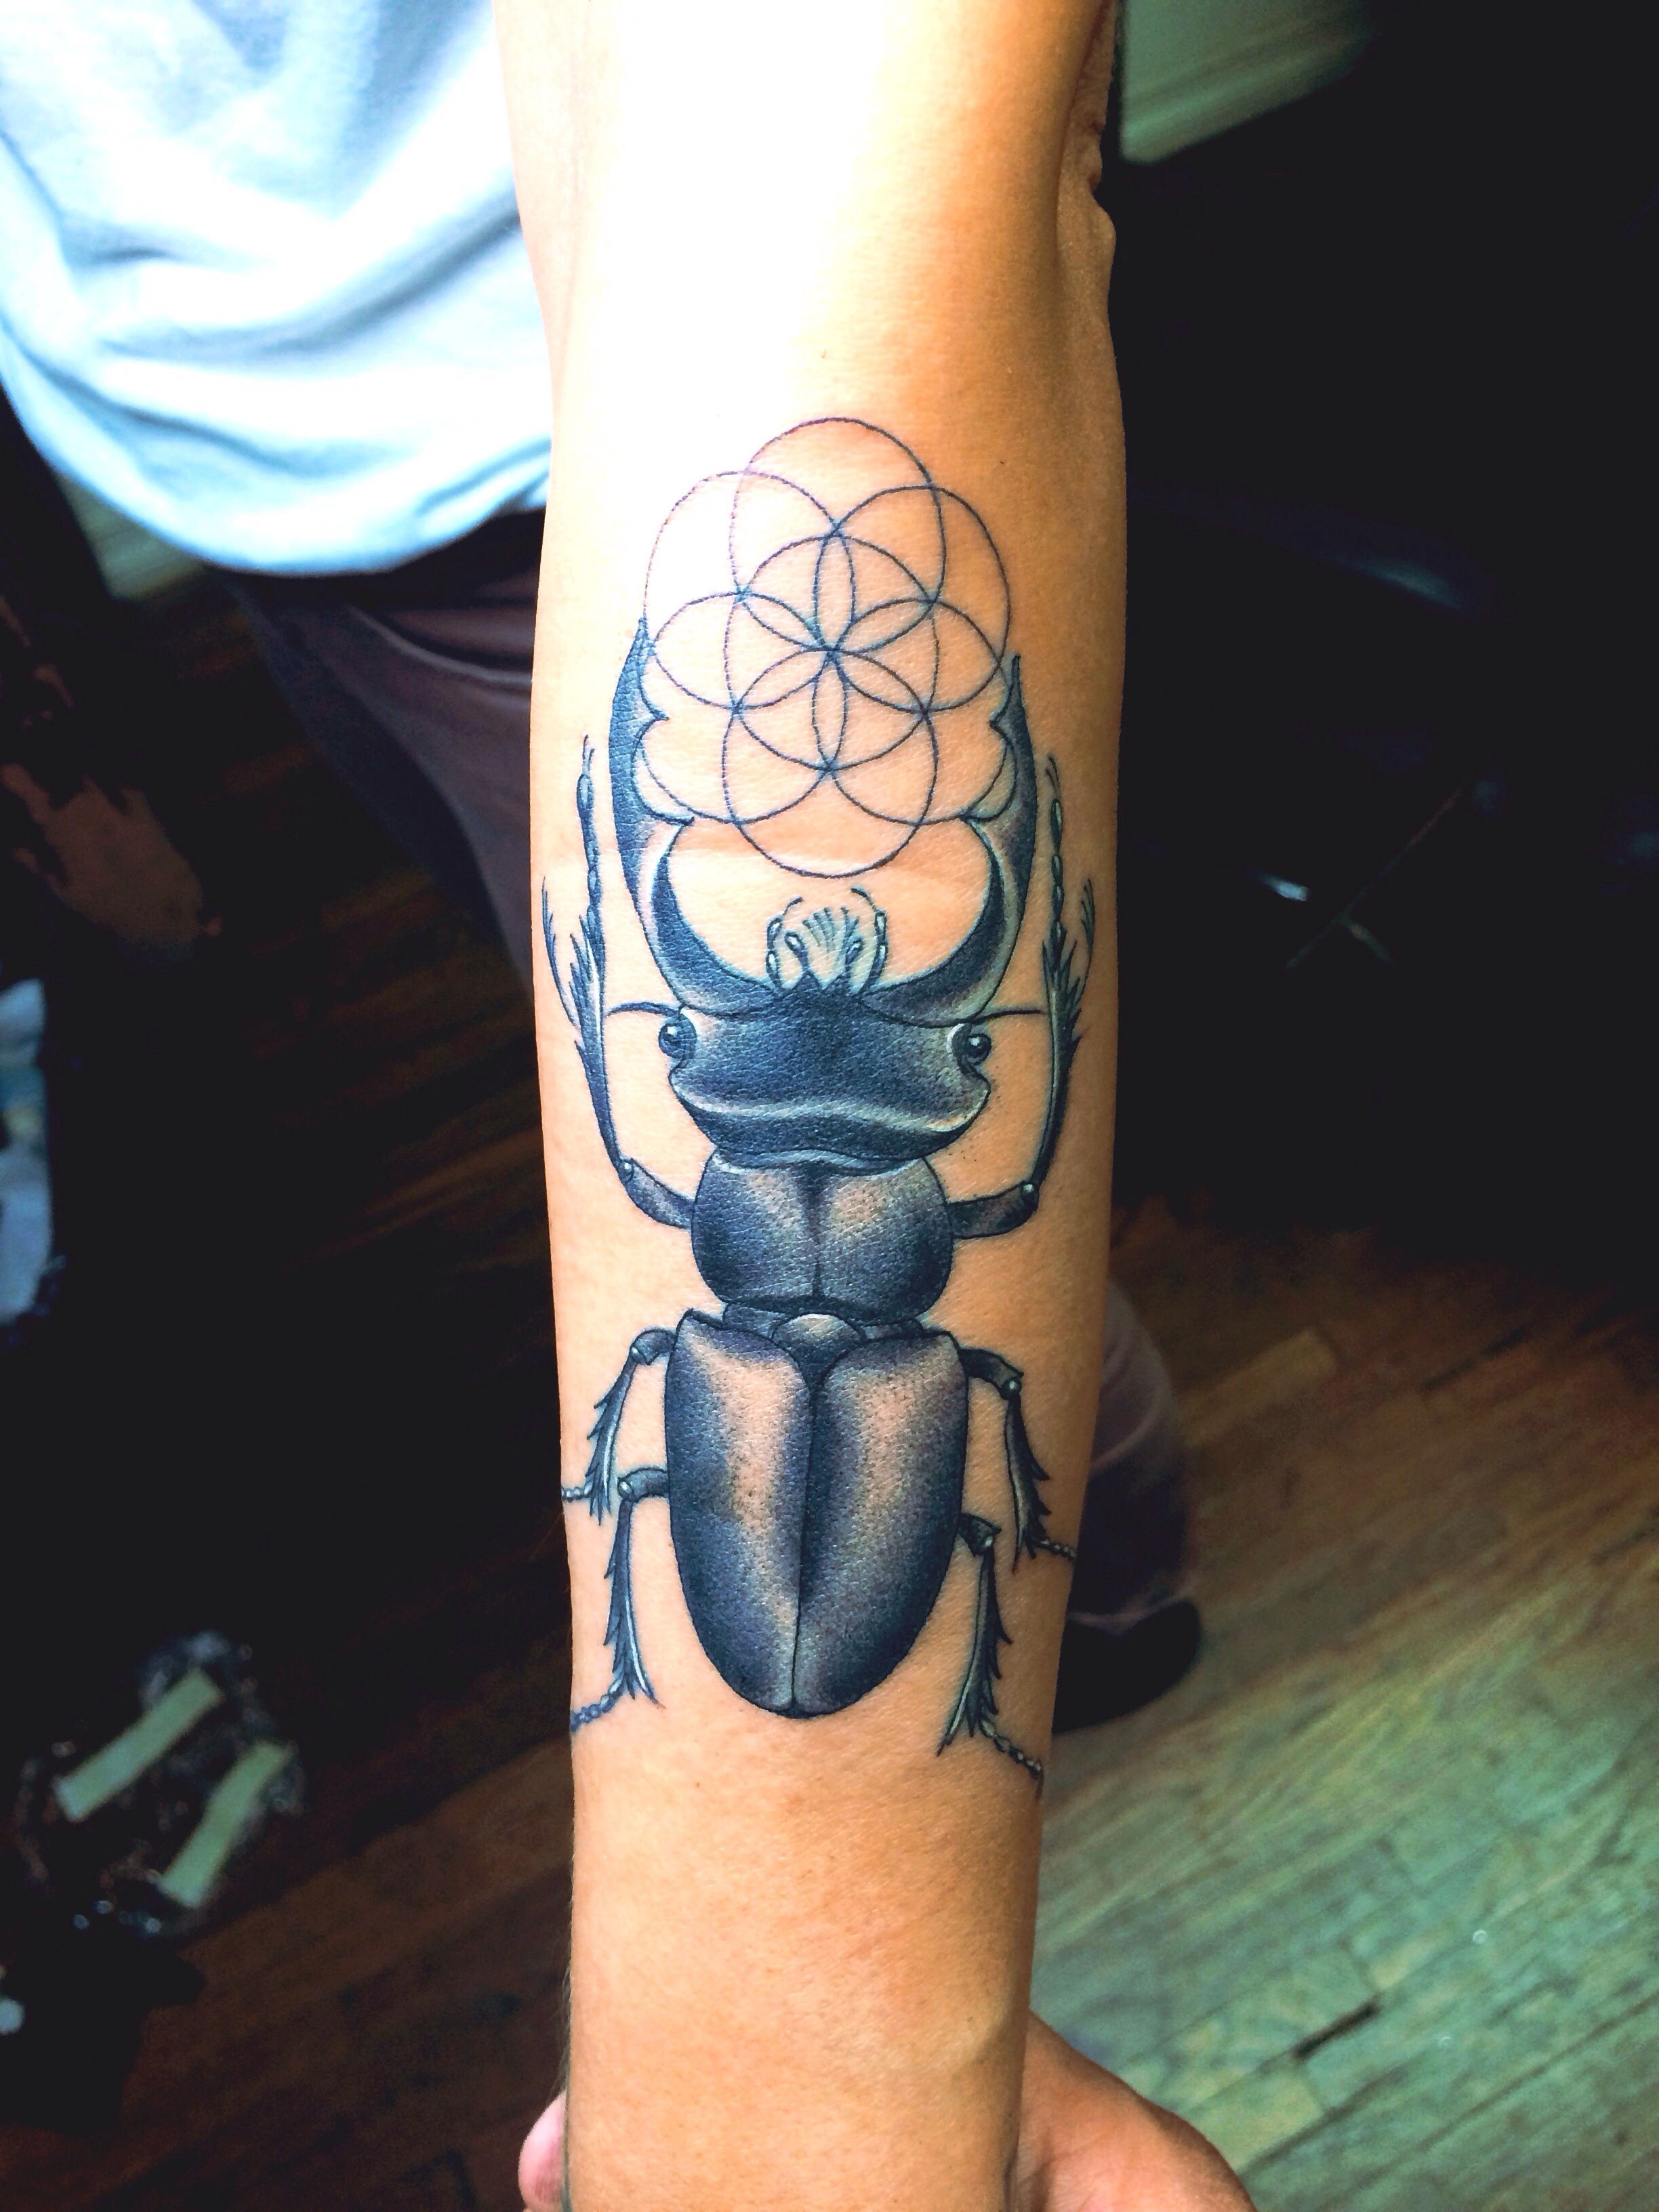 This is an image of Exceptional Sacred Geometry Beetle Tattoo Drawing